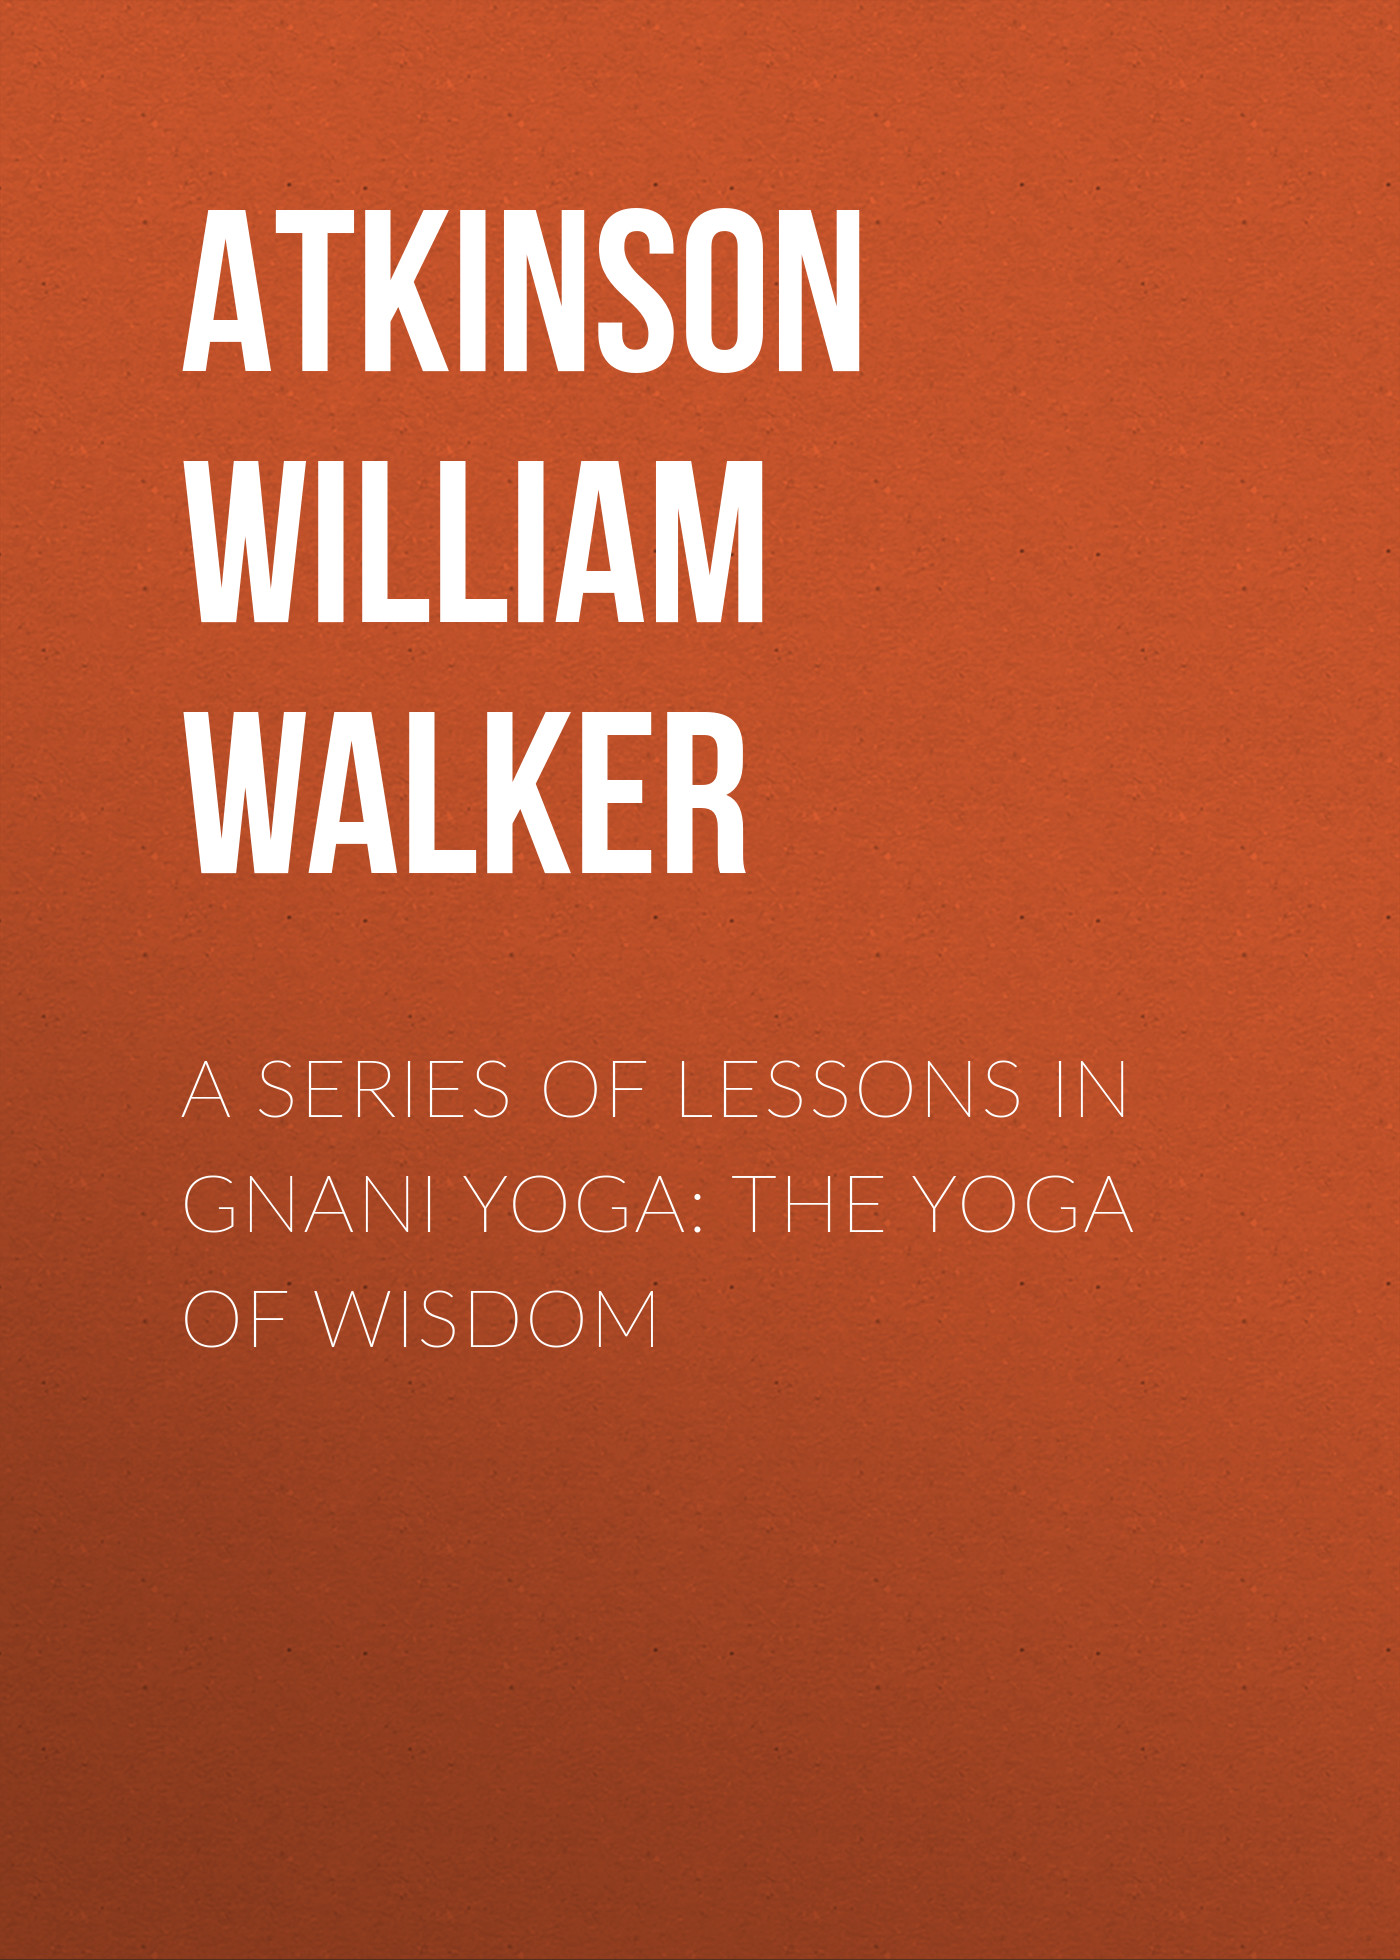 Atkinson William Walker A Series of Lessons in Gnani Yoga: The Yoga of Wisdom william walker atkinson telepathy its theory facts and proof